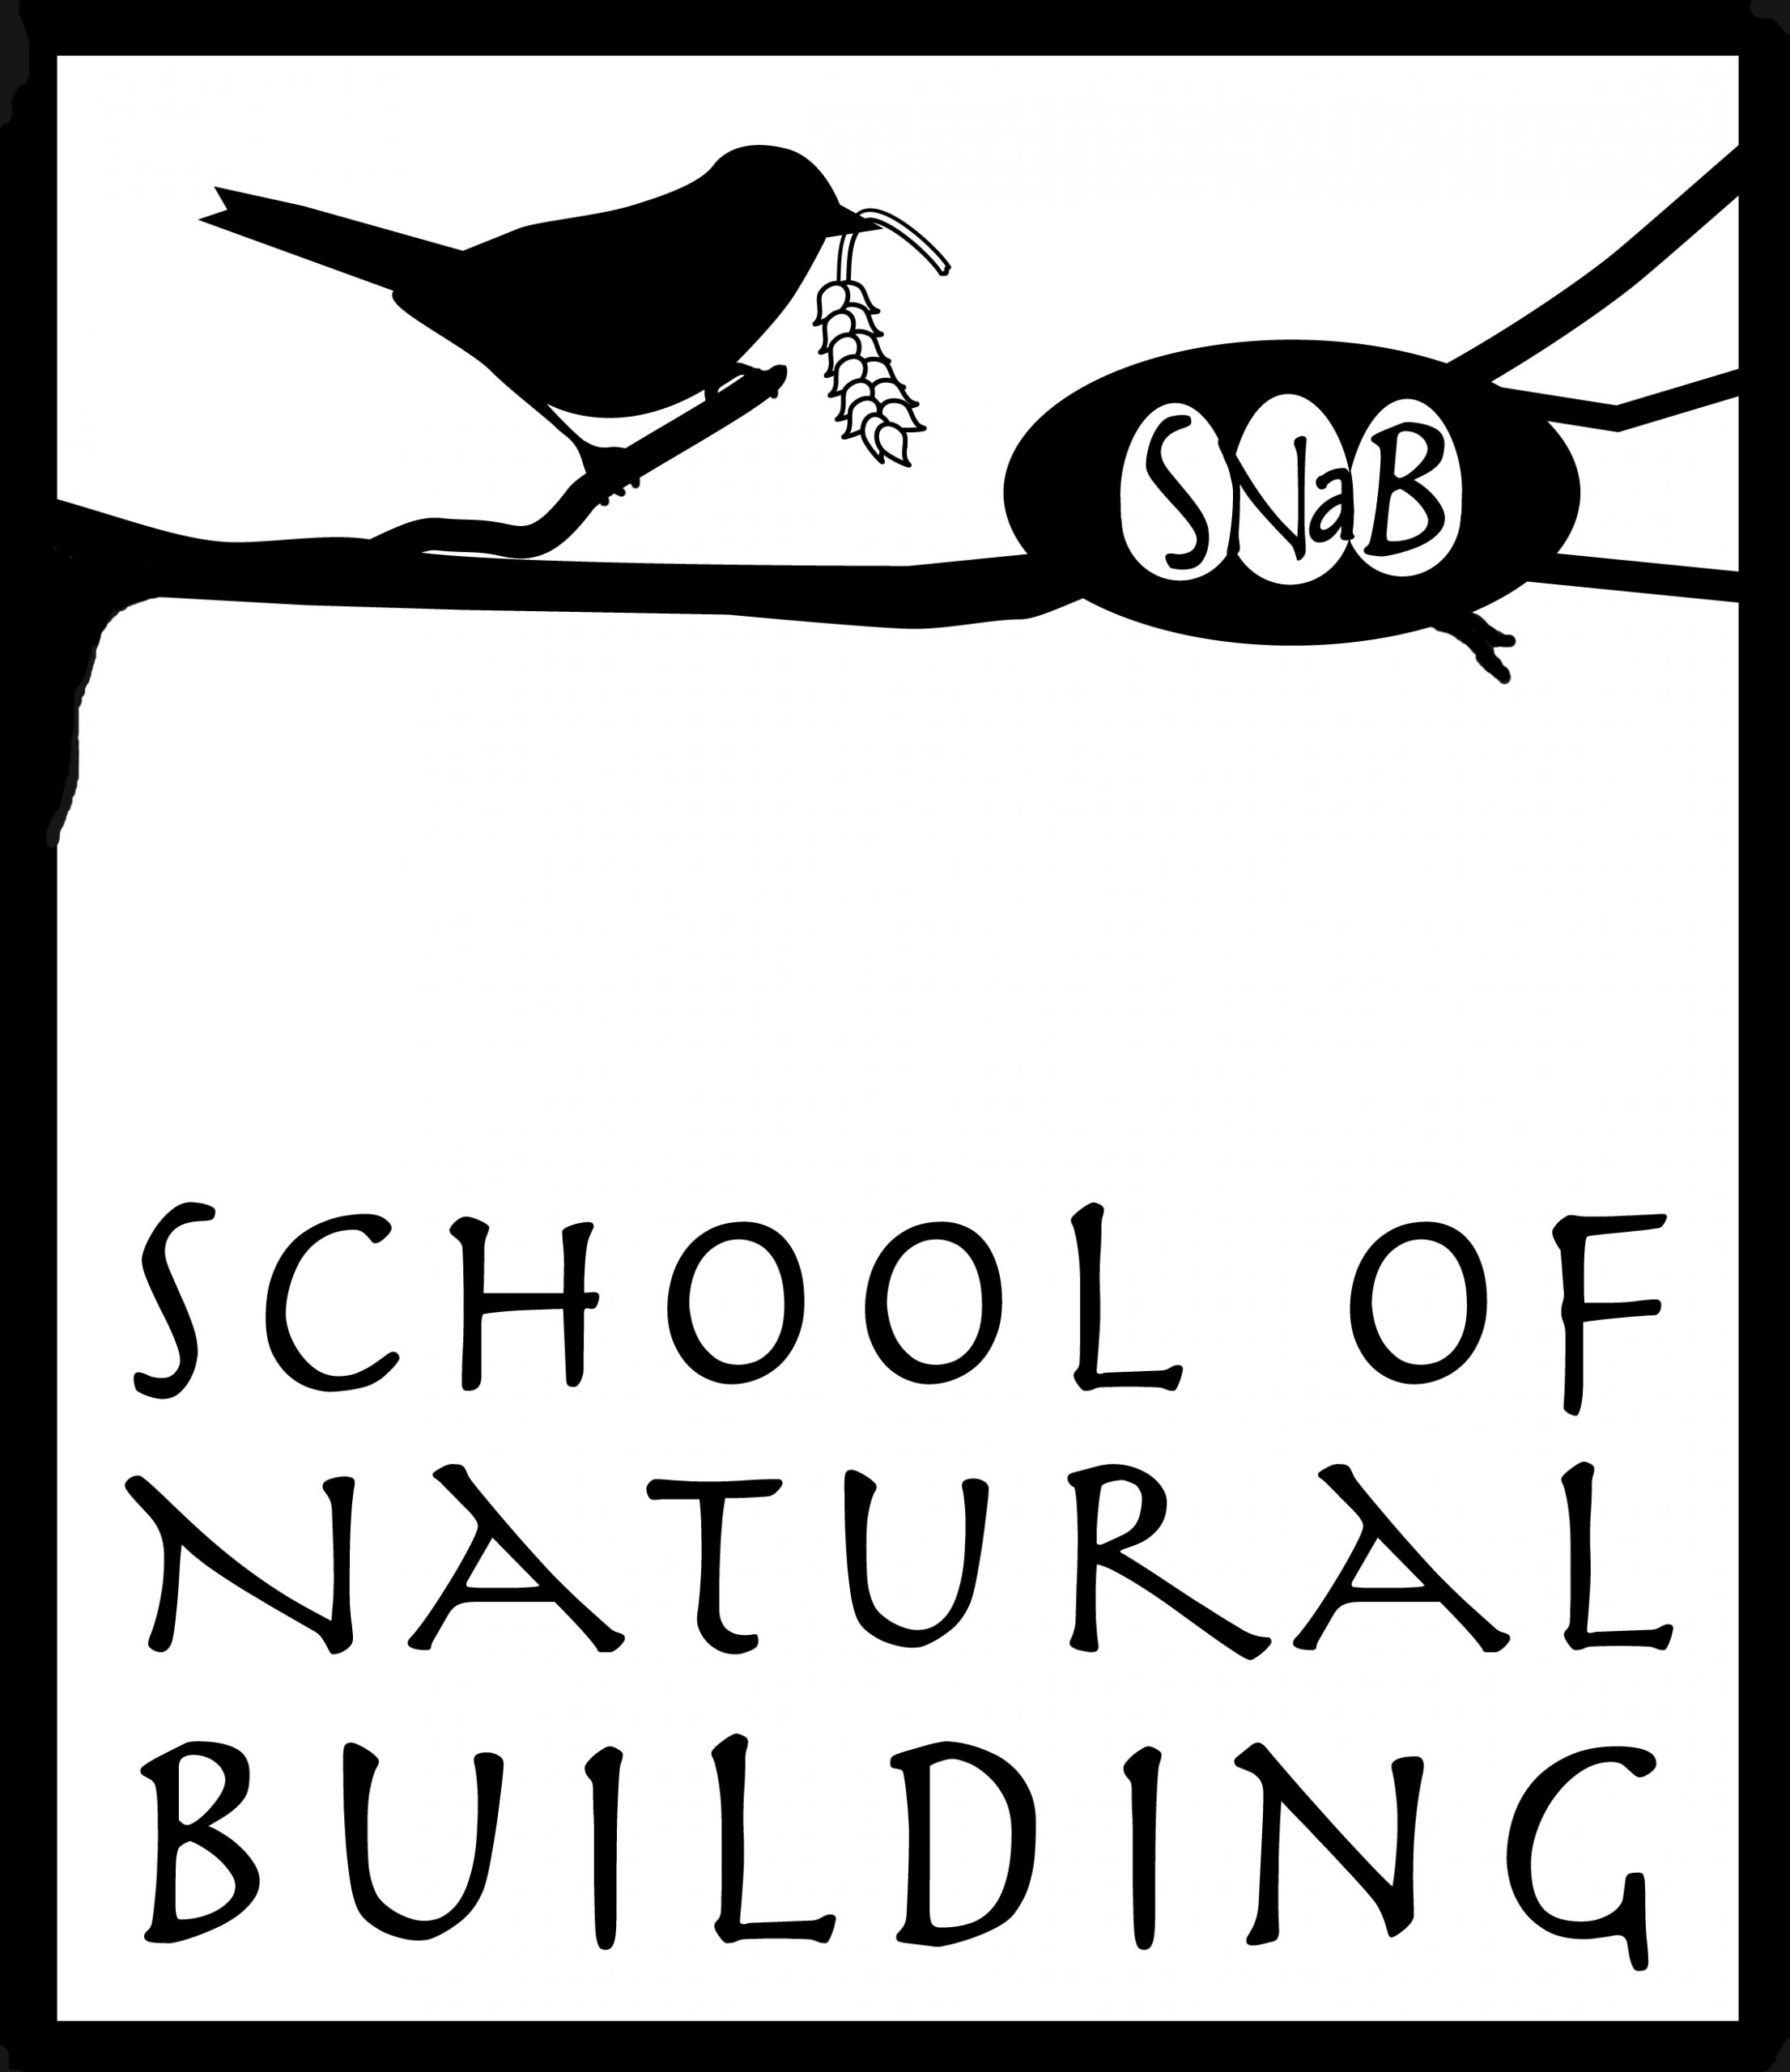 School of Natural Building logo